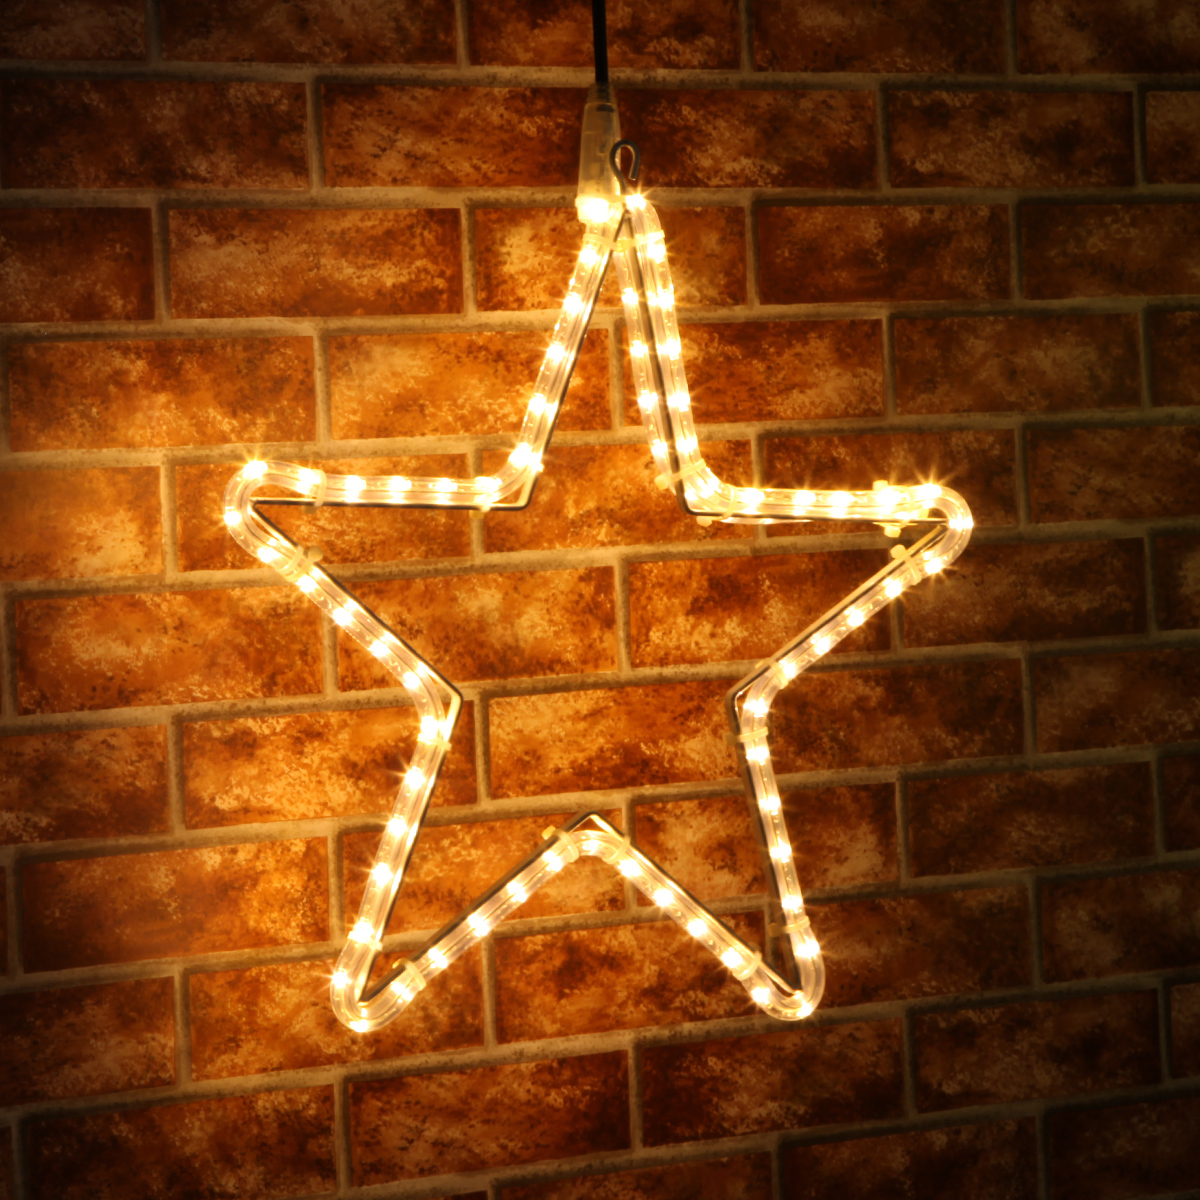 45cm Rope Light Star (warm white) - £24.99  45cm rope light star silhouette features ultra bright LED bulbs, available in white, warm white and blue.   www.festive-lights.com